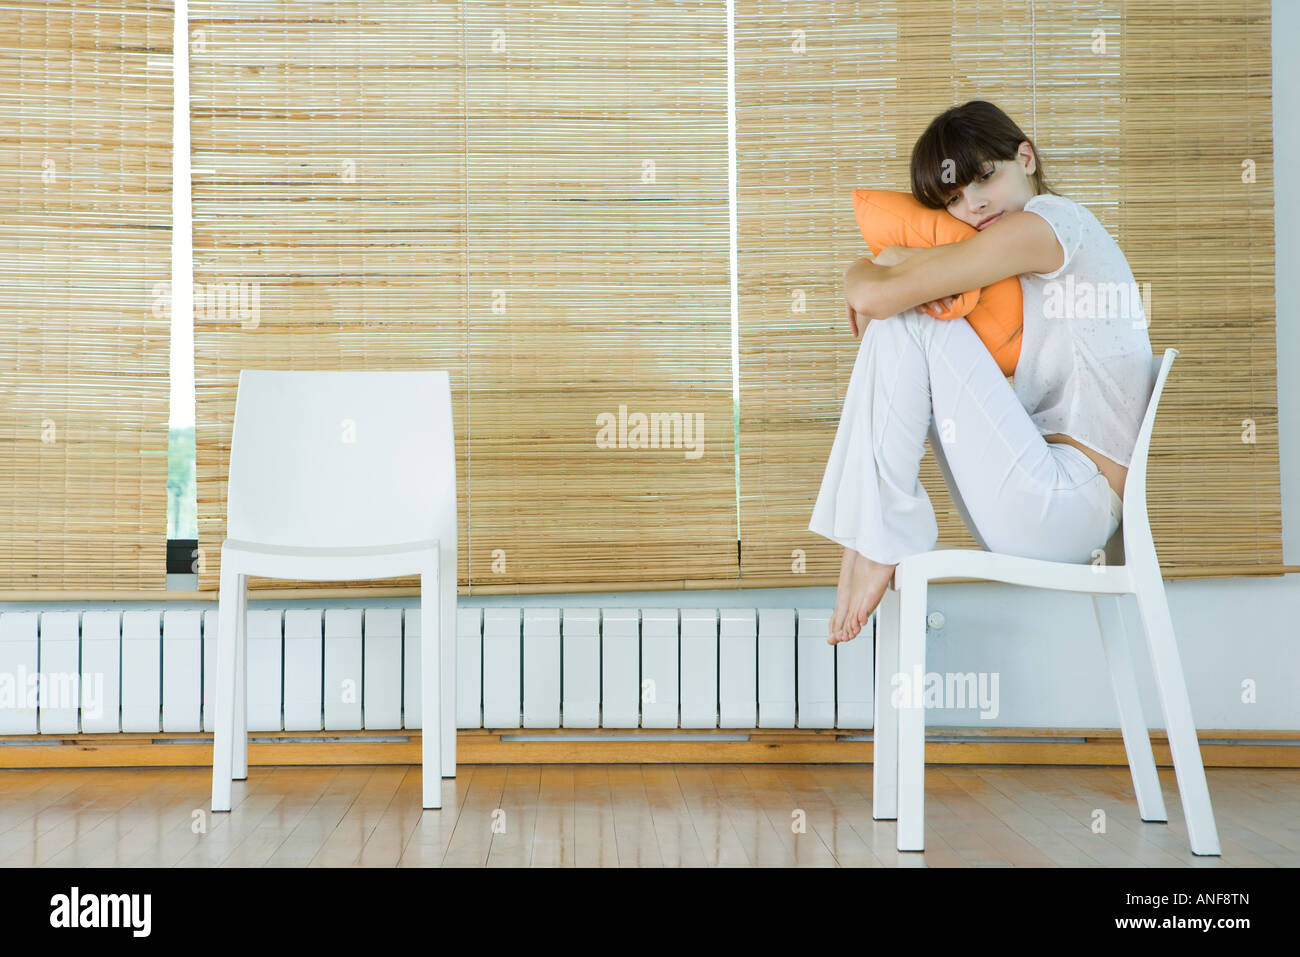 Young woman sitting in chair, hugging cushion - Stock Image